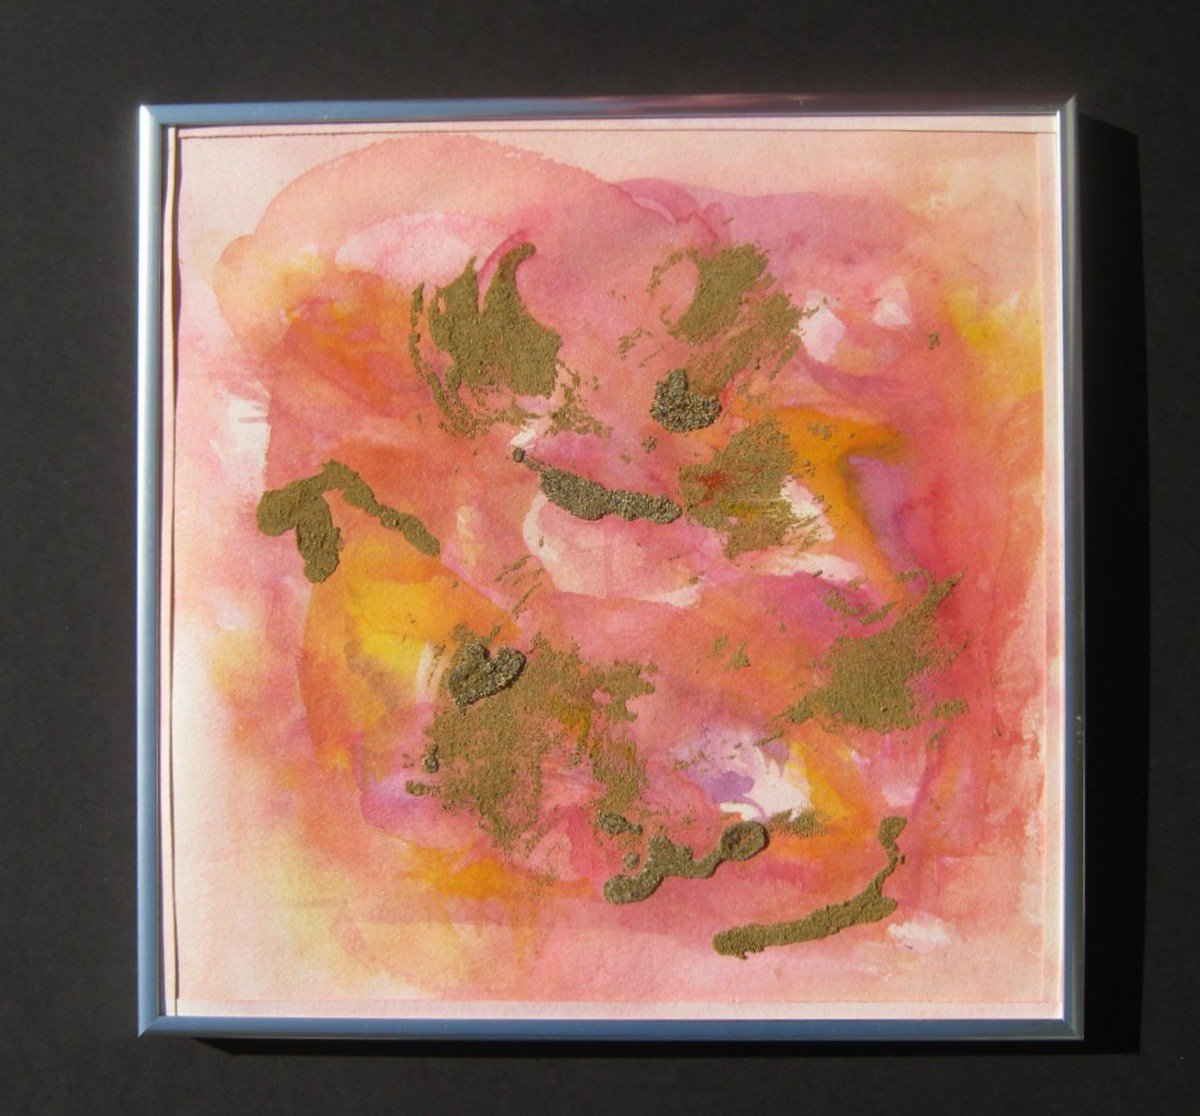 "The Pink Legend, Watercolor, and Sand, Matted with Part of Picture -Cut Edge, 12"" X 12"" X 1.9"", 2012"